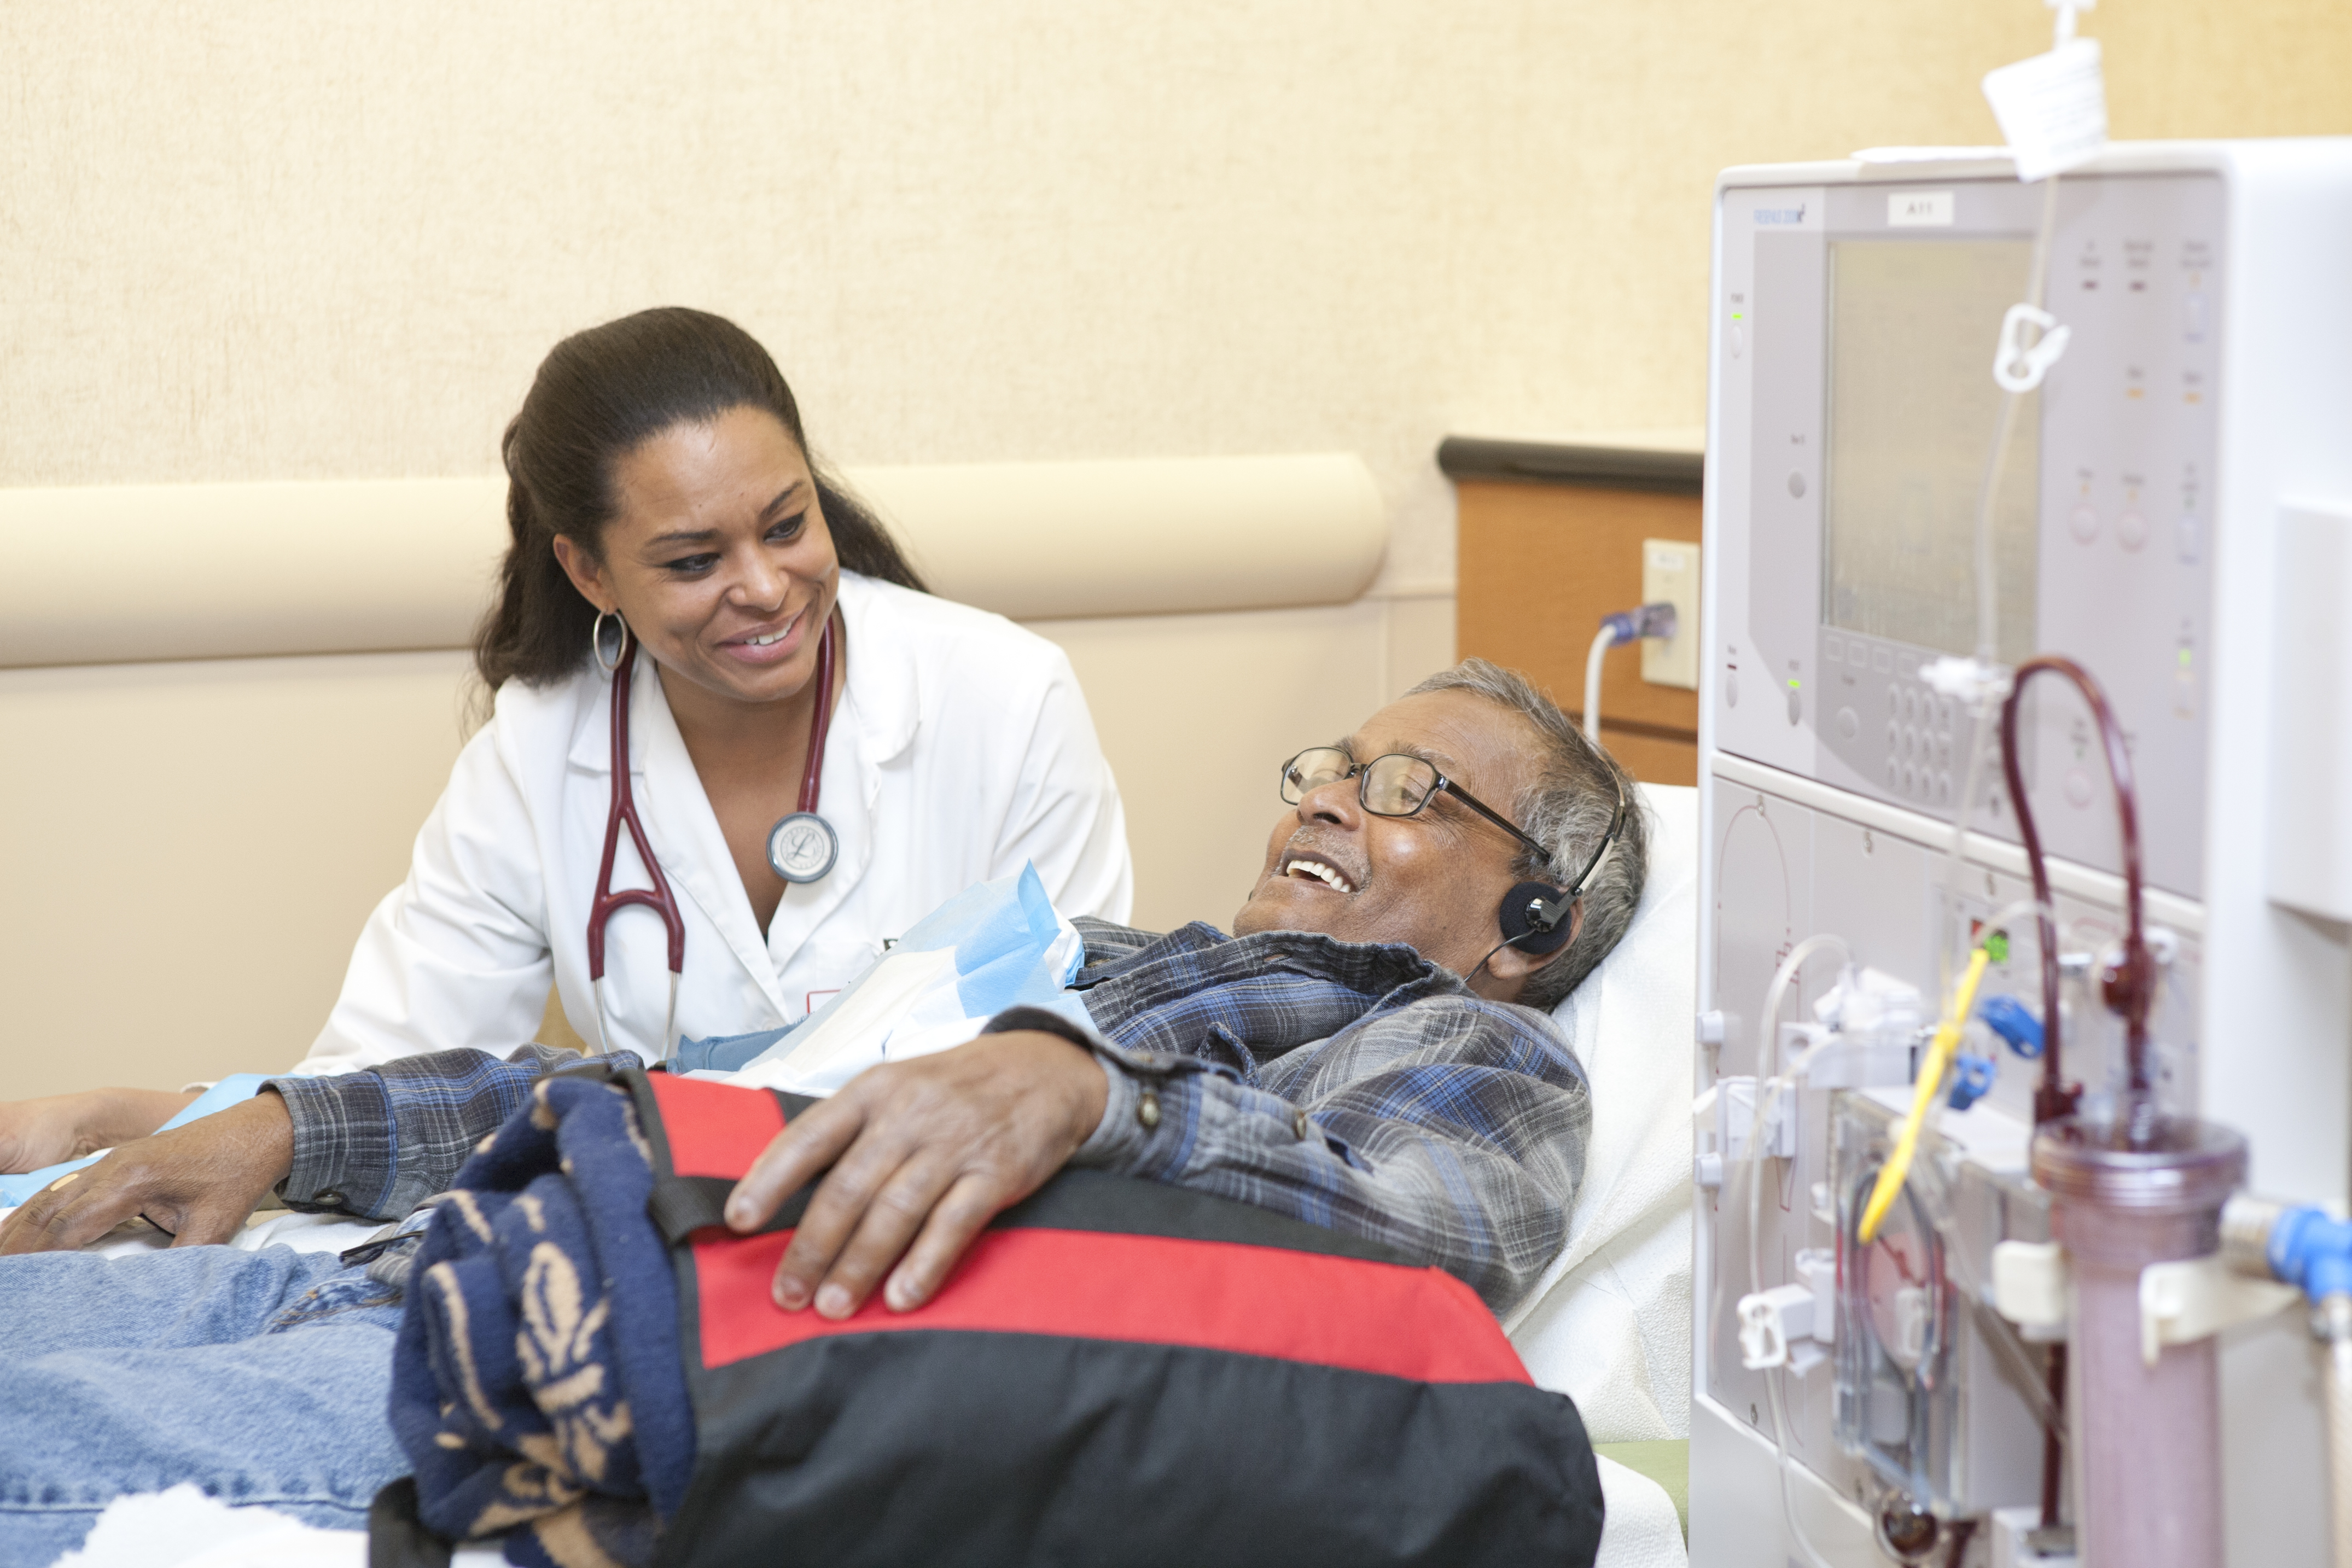 cost effectiveness of dialysis for esrd patients Continuous use of medication is unlikely to be cost-effective for prices  the  dialysis option represents esrd patients who receive dialysis and.